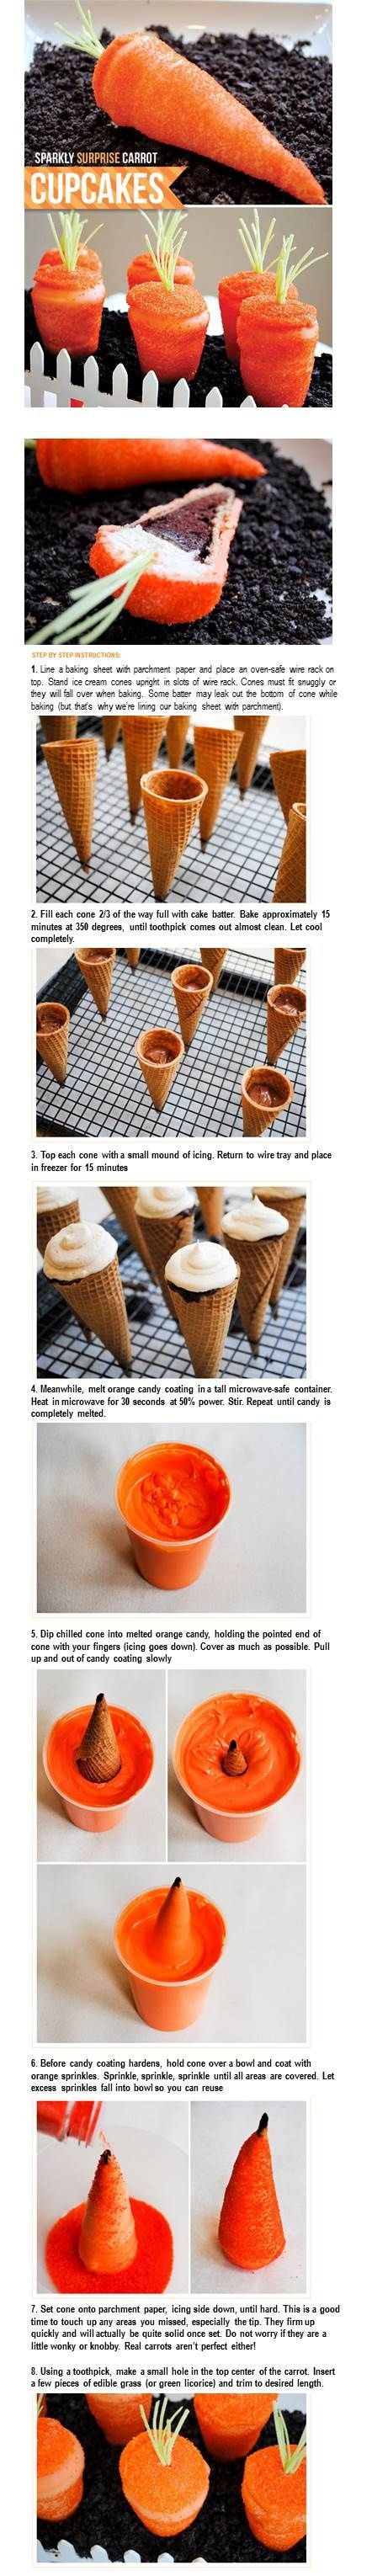 Carrot Cupcakes tutorial